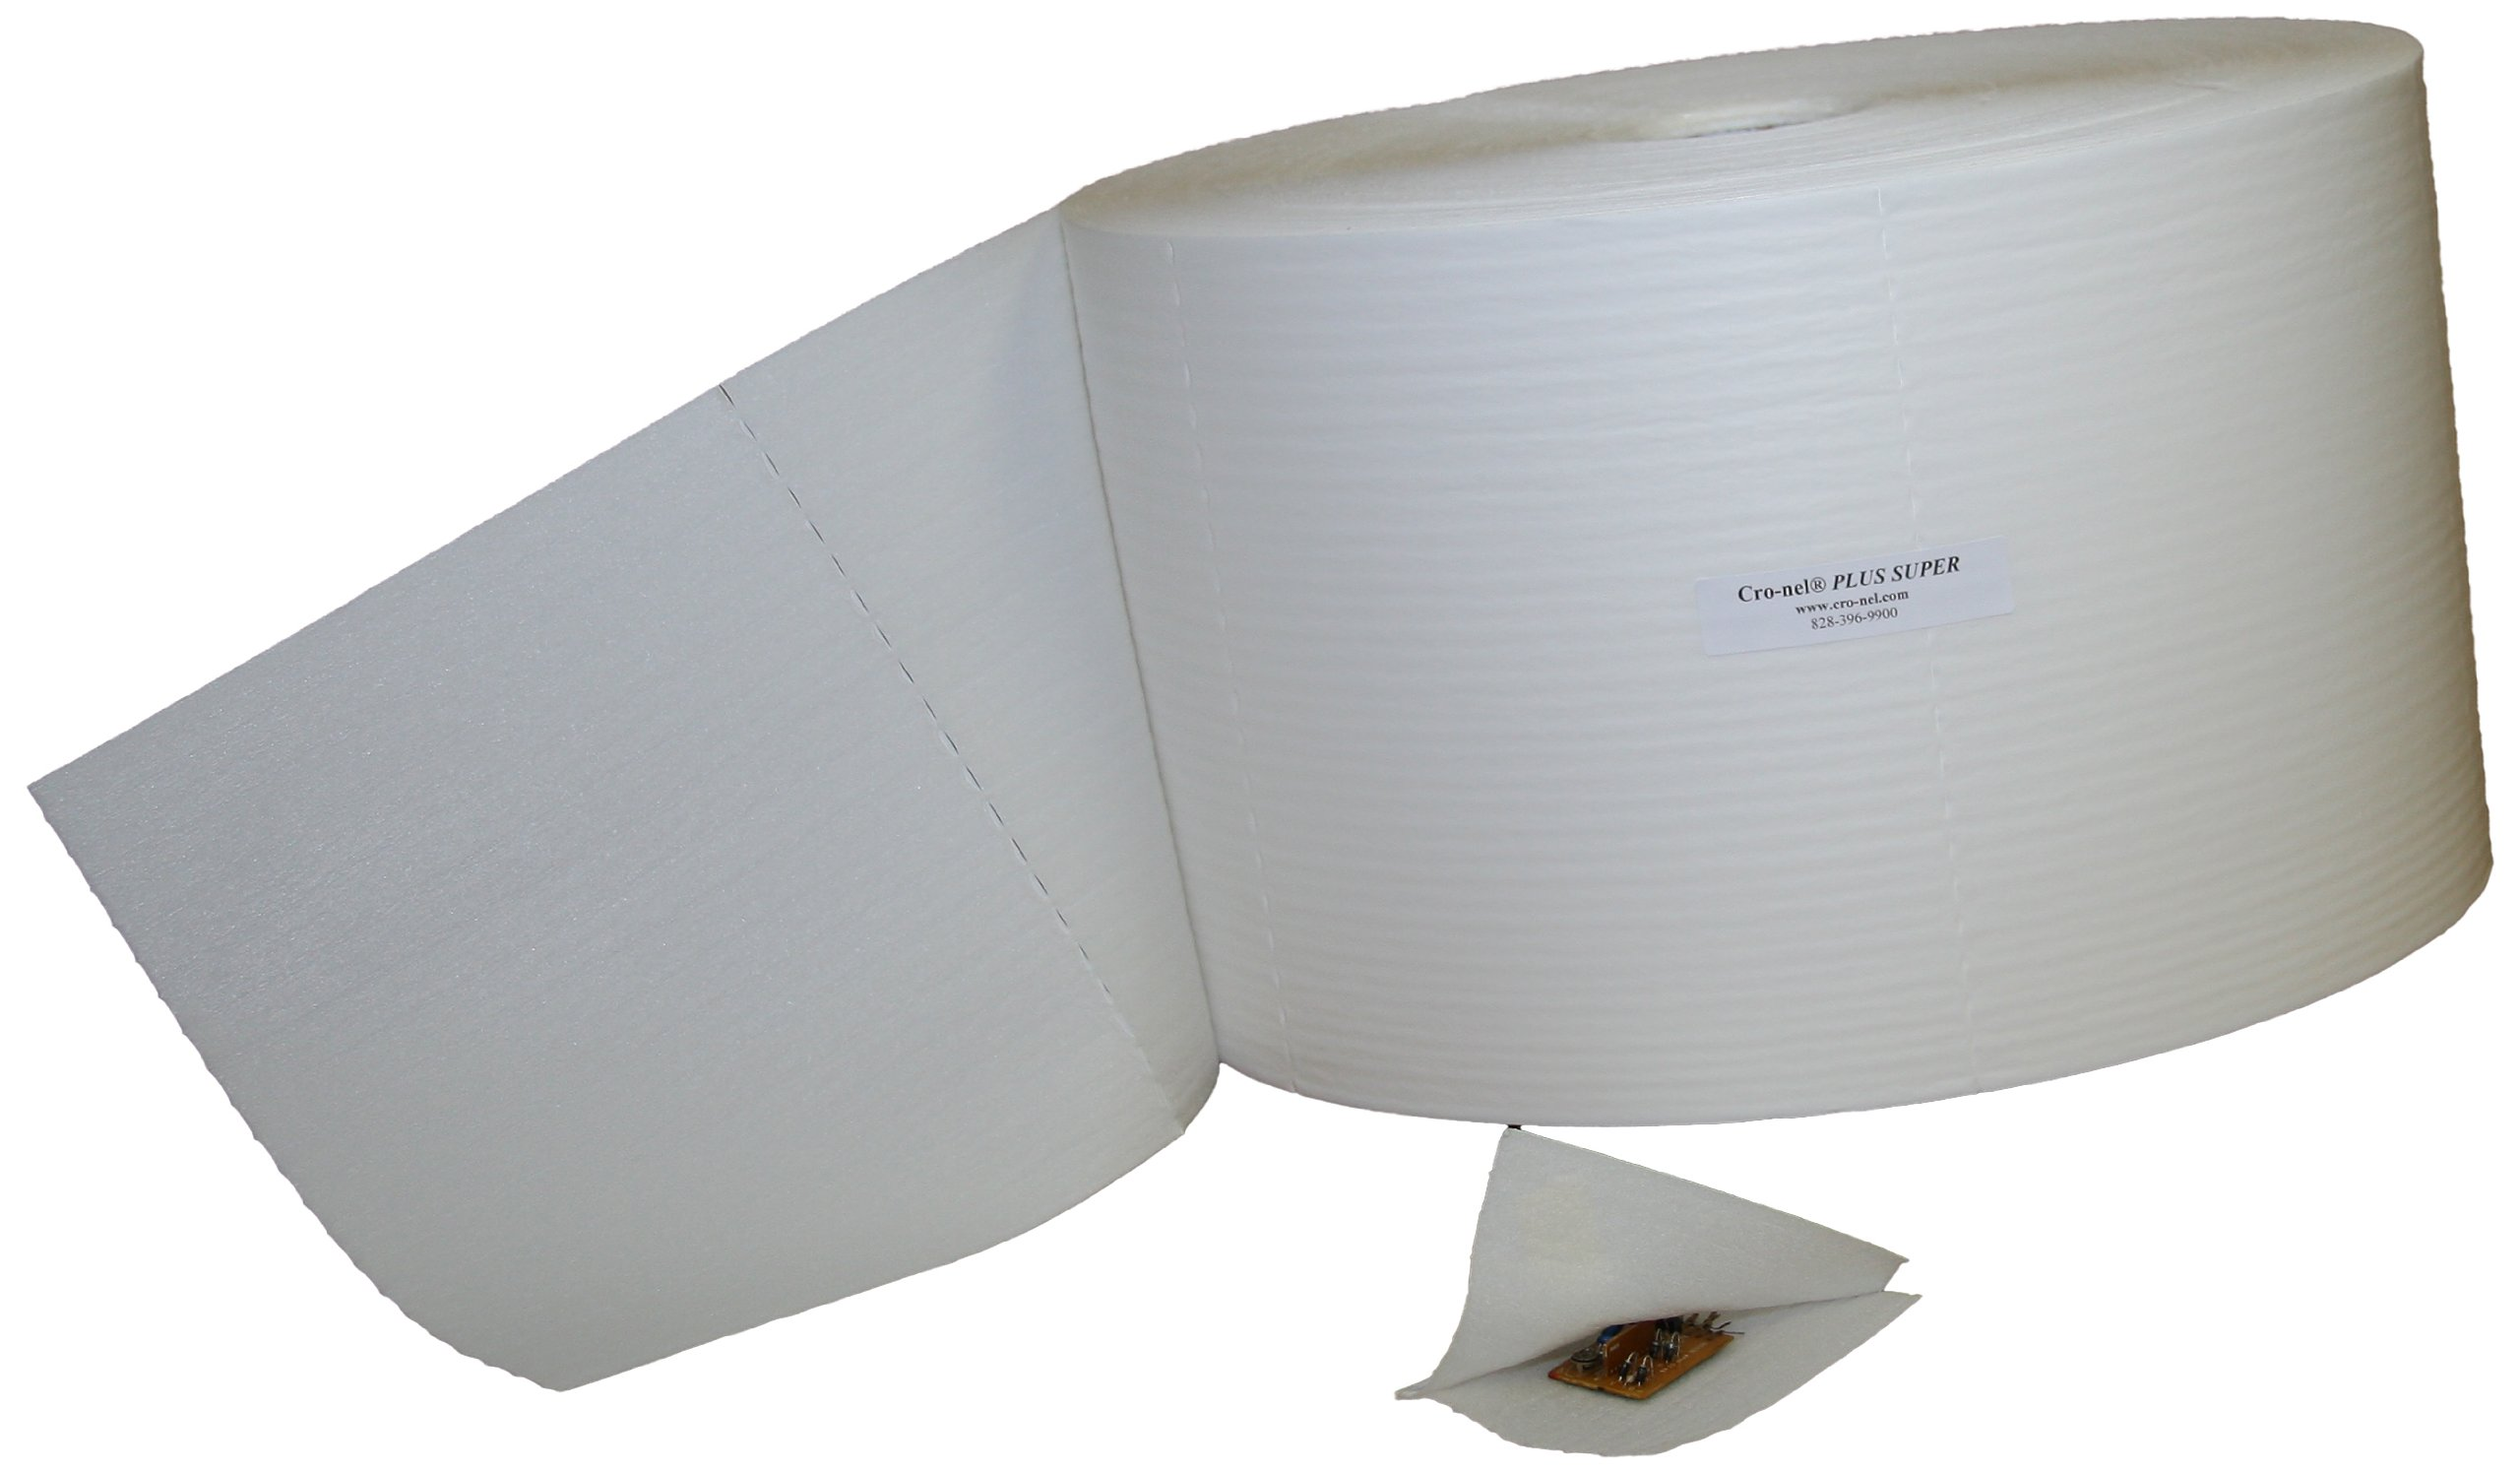 Cro-nel CPSs12p6lf500 Plus Super Protective Packaging, 2.3 mil Film Laminated to 1/16'' Microfoam with cohesive on the foam, Cold Seal, Self Stick, 12'' Wide Roll, 6'' Perforation Lengths, 500 Feet Long and 3'' Core